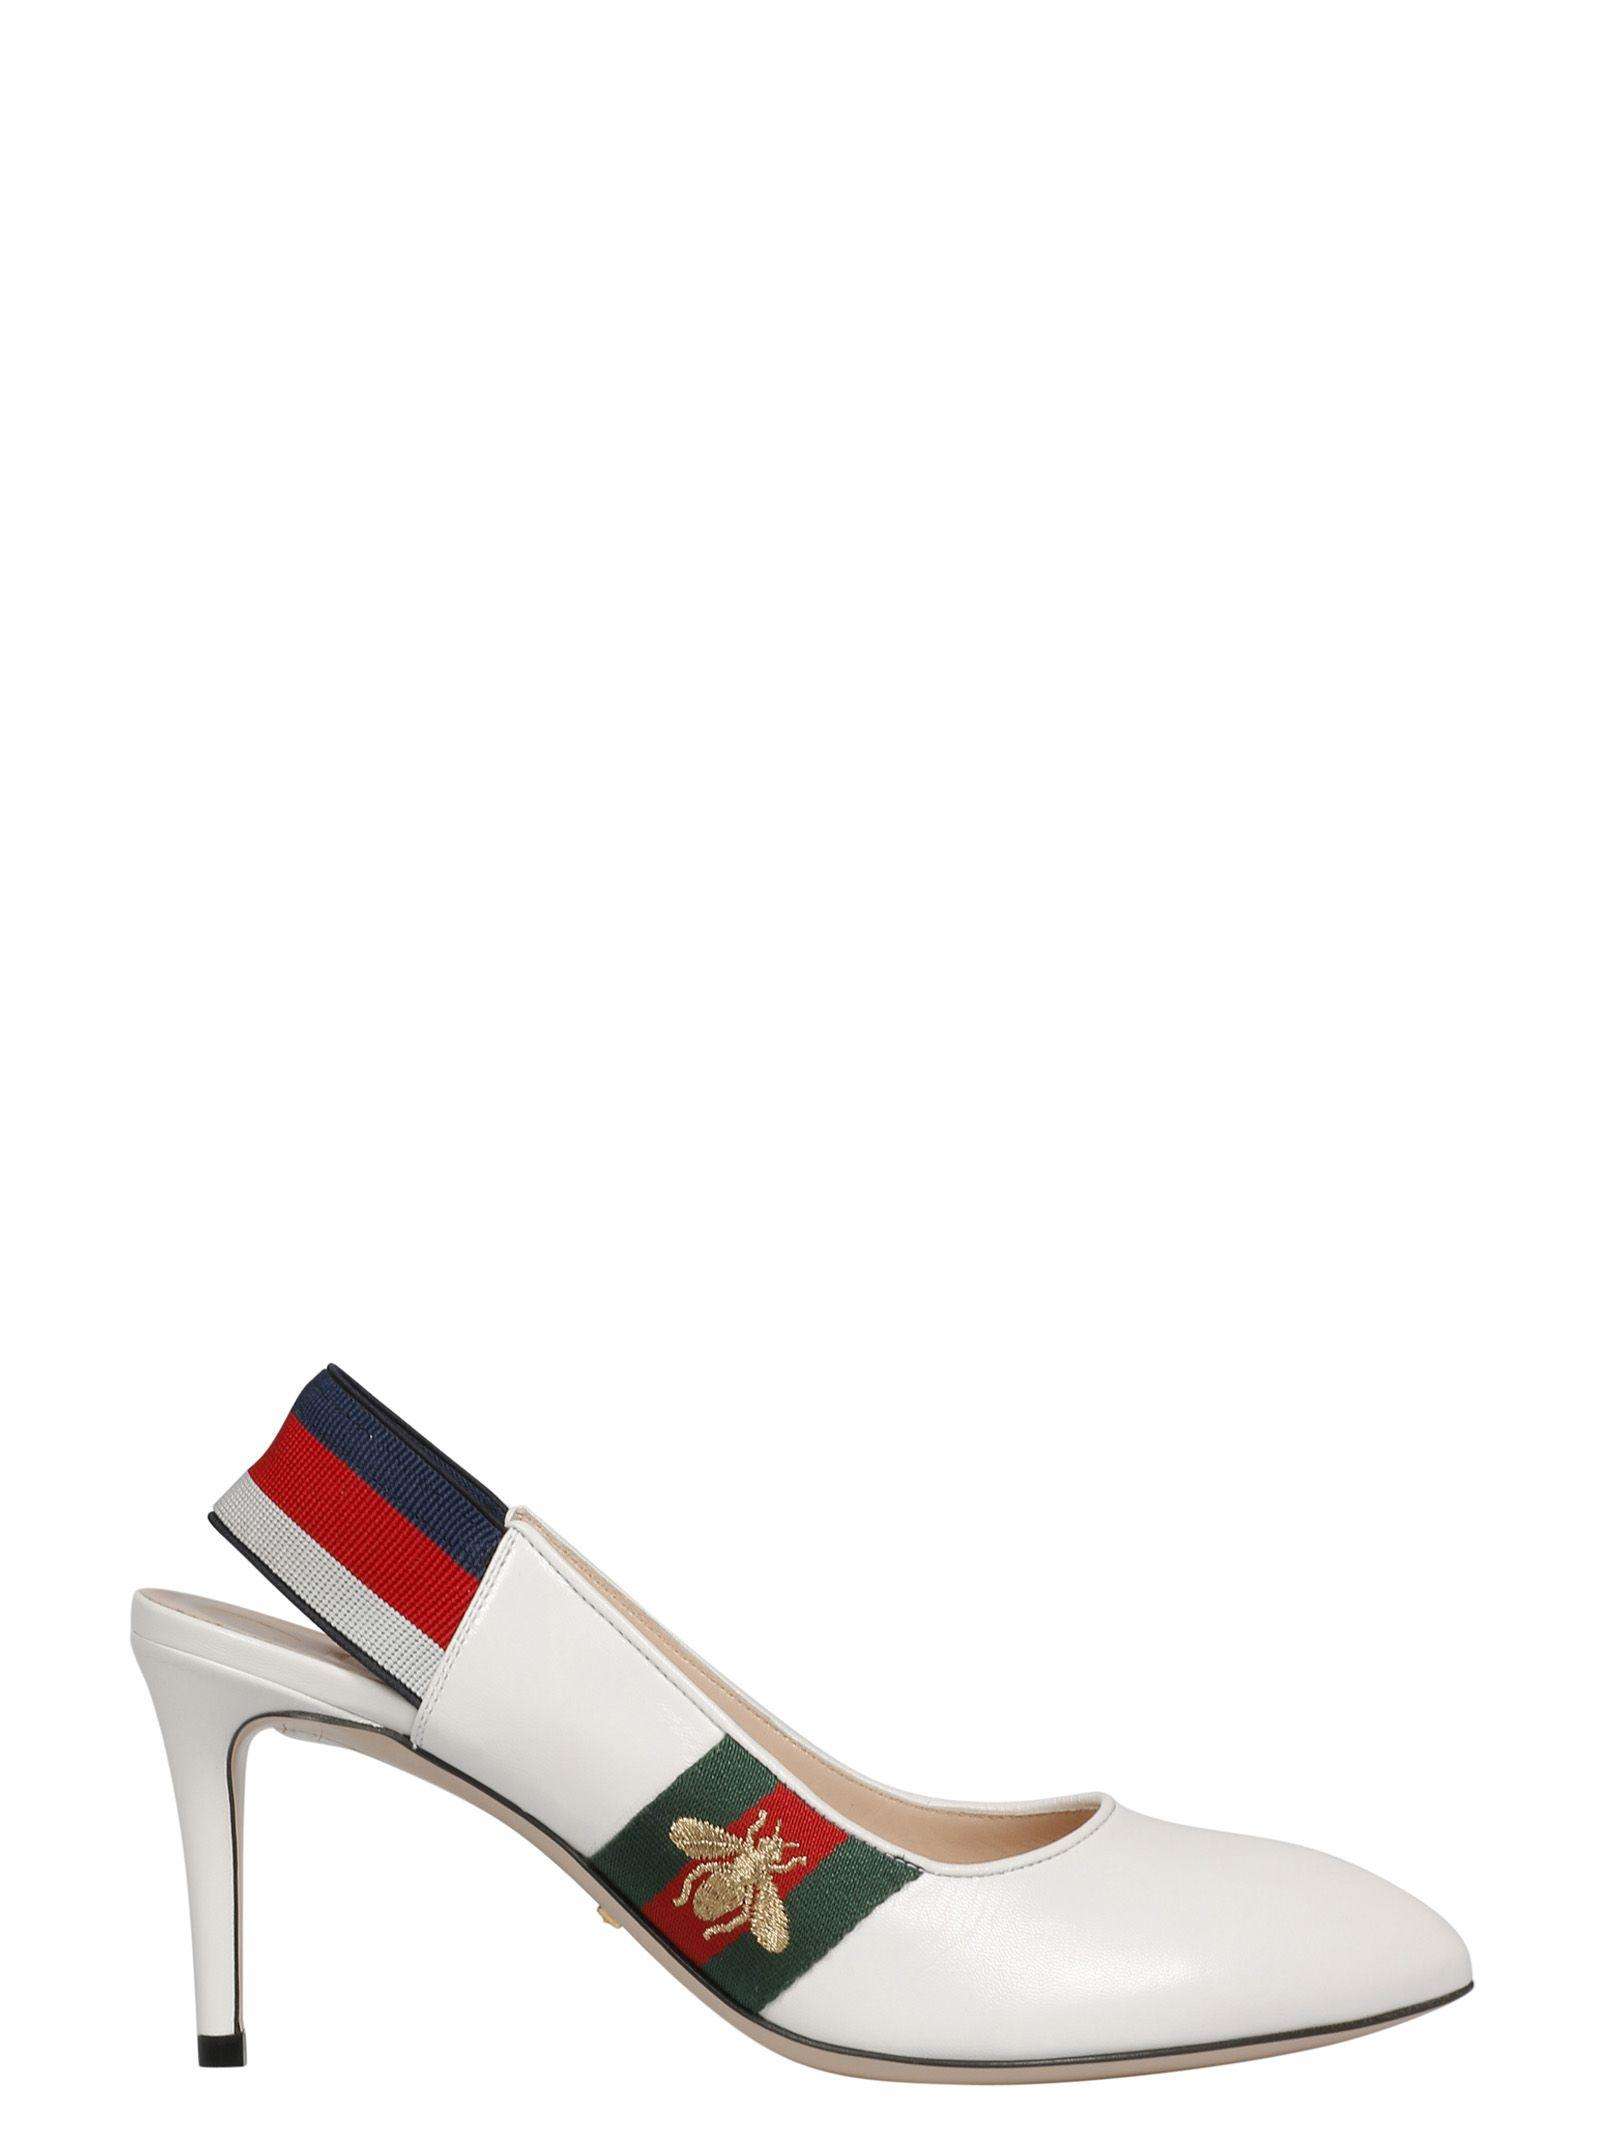 a0bfd612be3b Gucci Women s Sylvie Leather Web Mid Heel Slingback Pumps In White ...